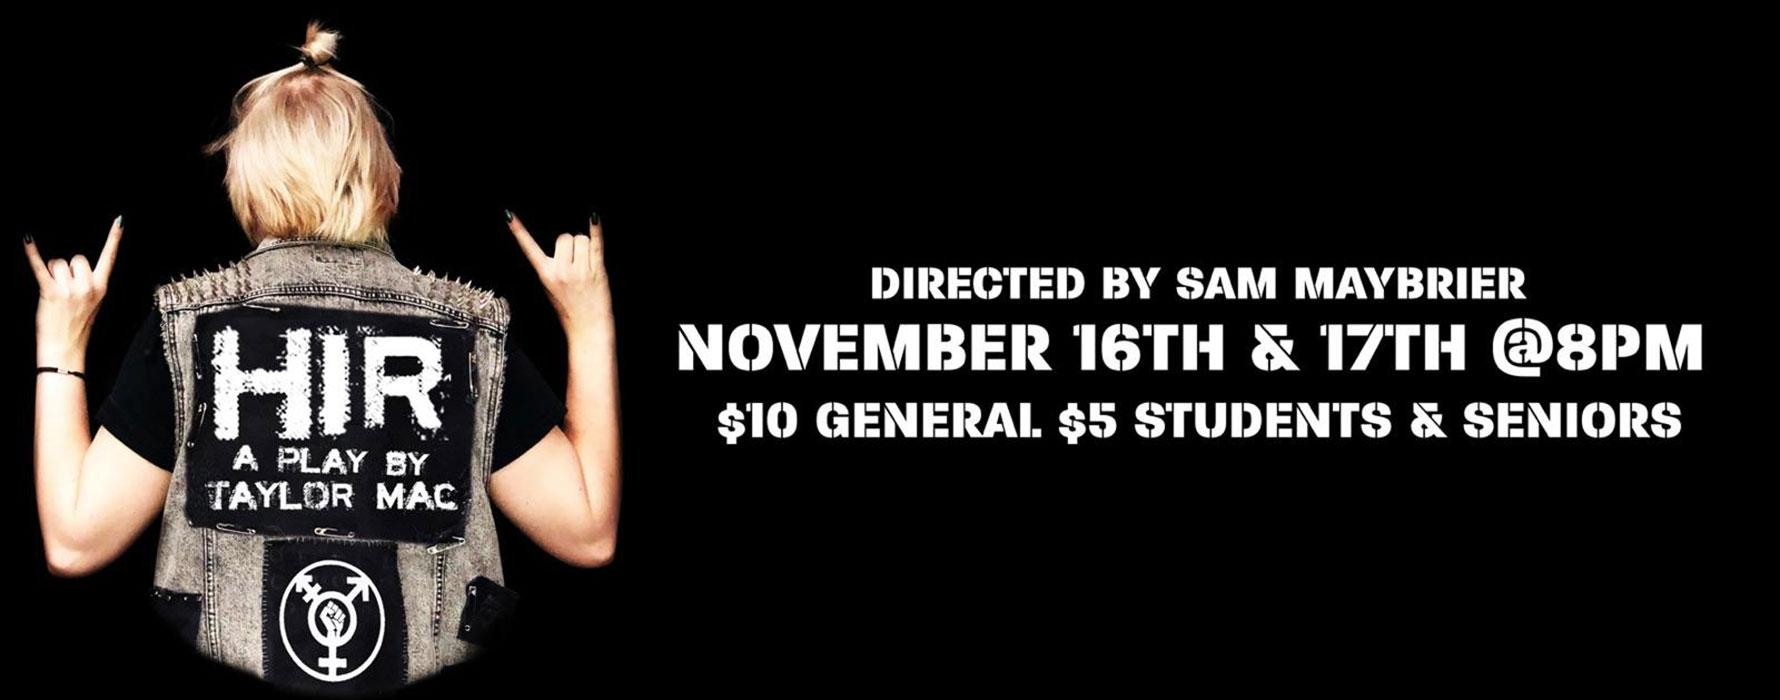 HIR: A Play by Taylor Mac. Directed by Sam Maybrier. November 16th and 17th @ 8 .p.m.$10 General $5 Students and Seniors